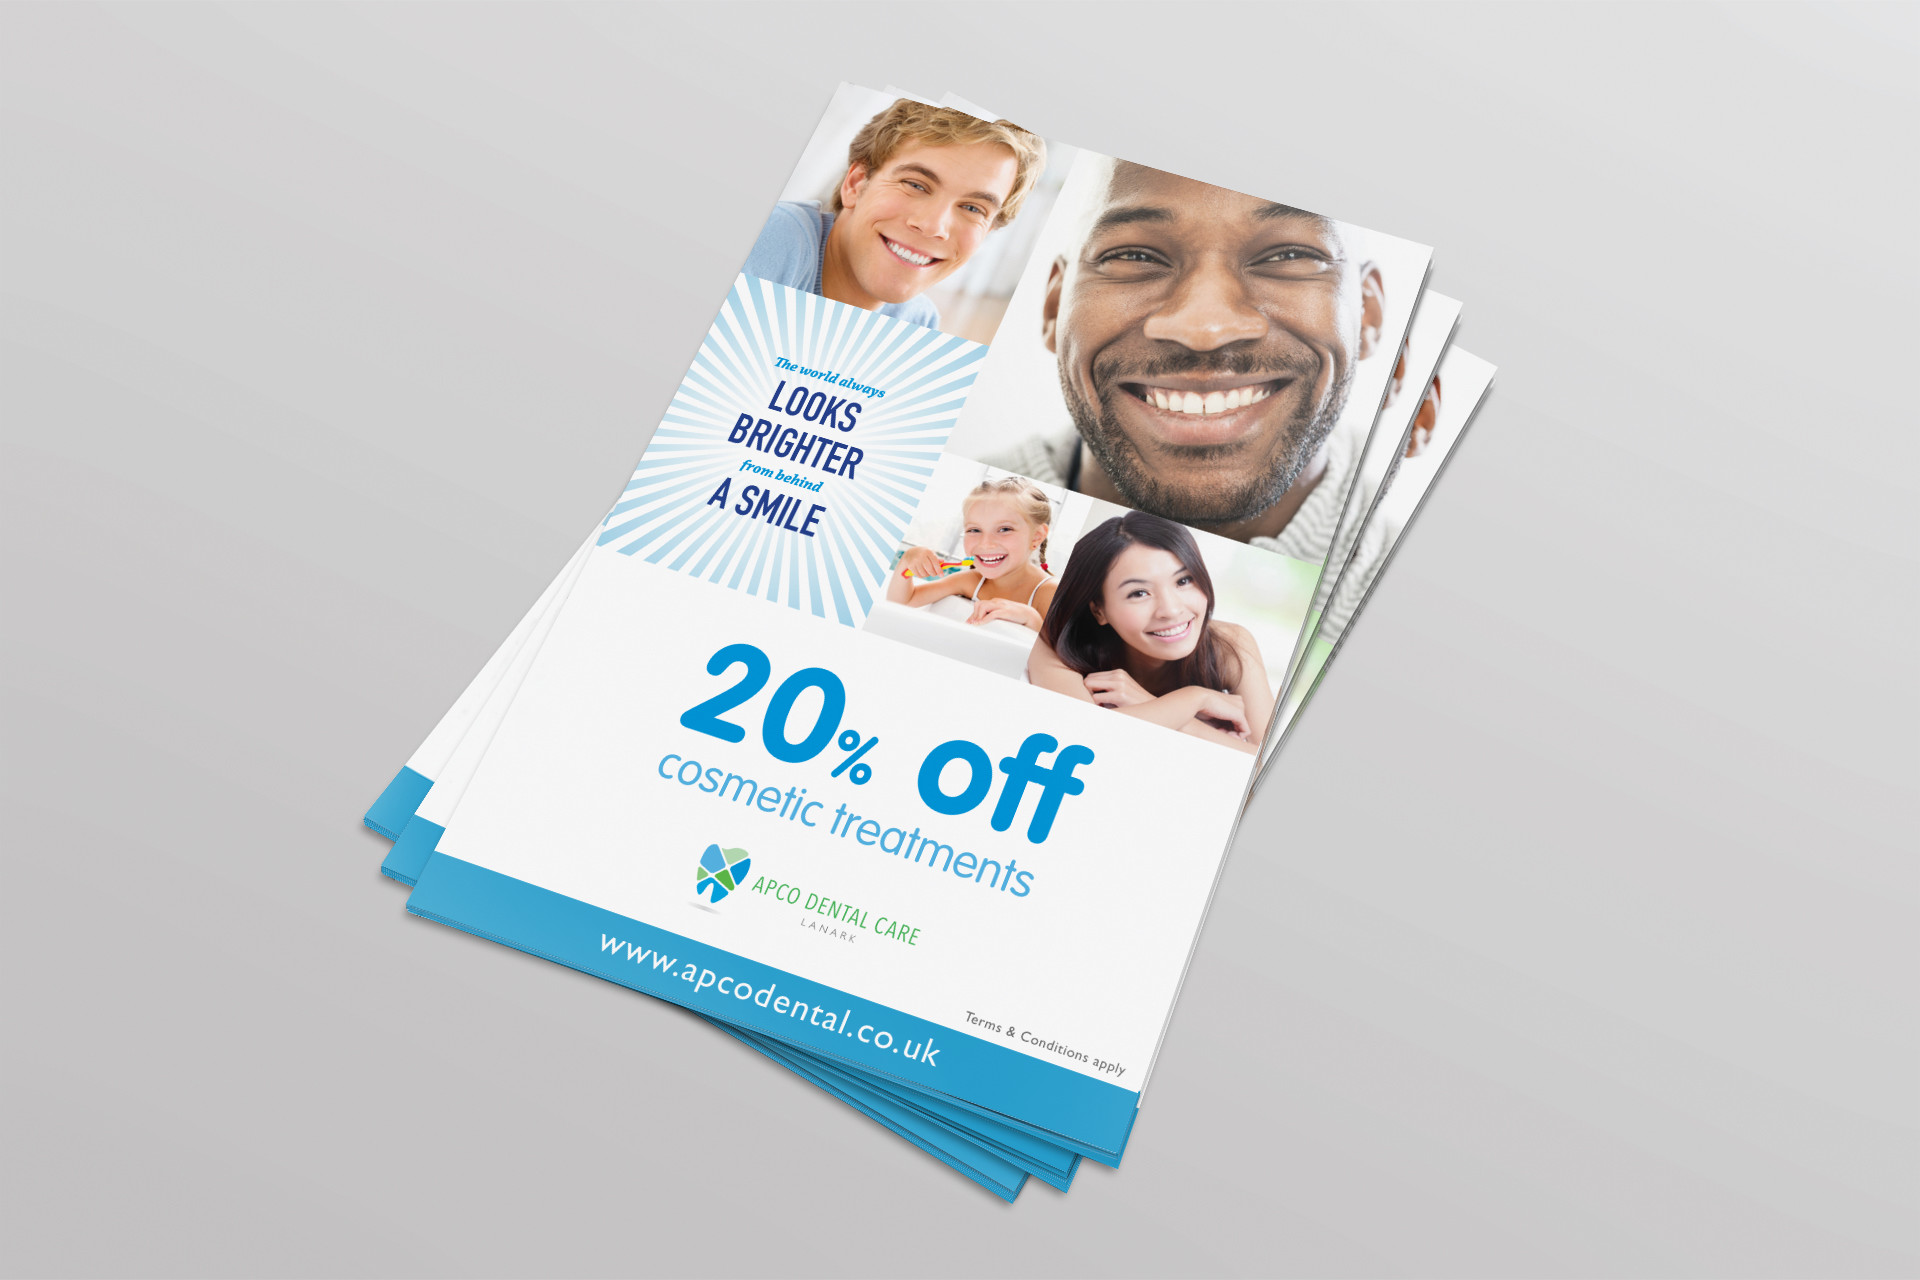 Flyer-design-Glasgow-Edinburgh-West-Lothian-33.jpg